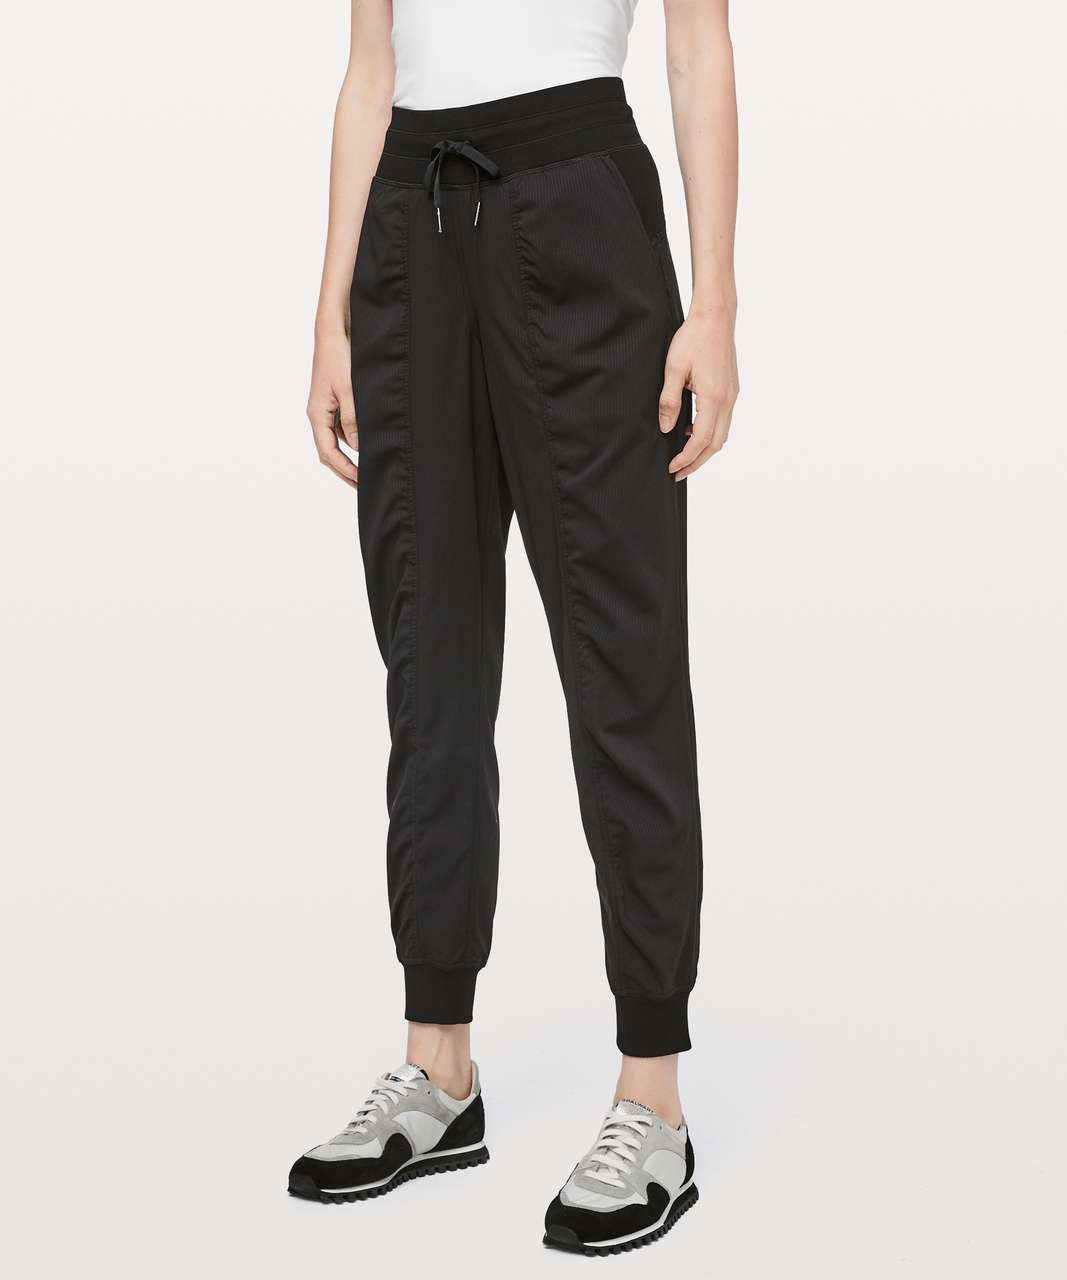 "Lululemon Dance Studio Jogger *29"" - Black"